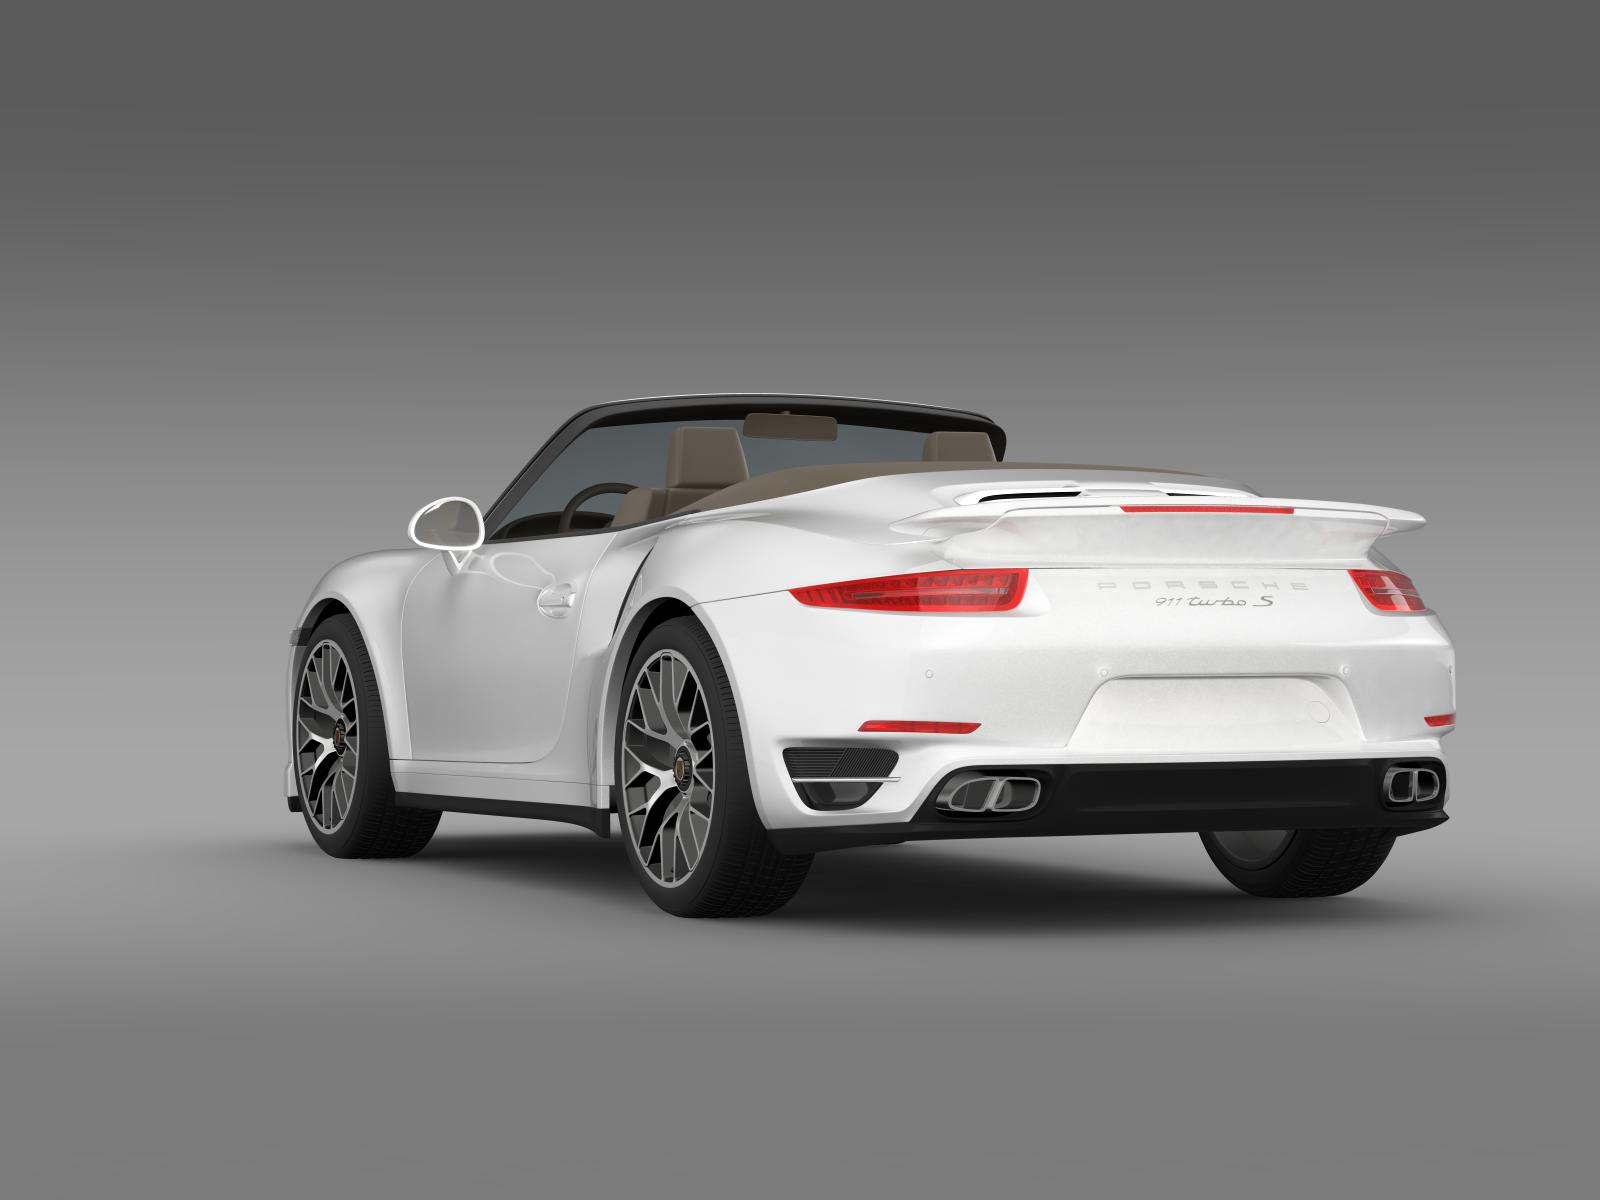 porsche 911 turbo s cabrio 2014 3d model. Black Bedroom Furniture Sets. Home Design Ideas